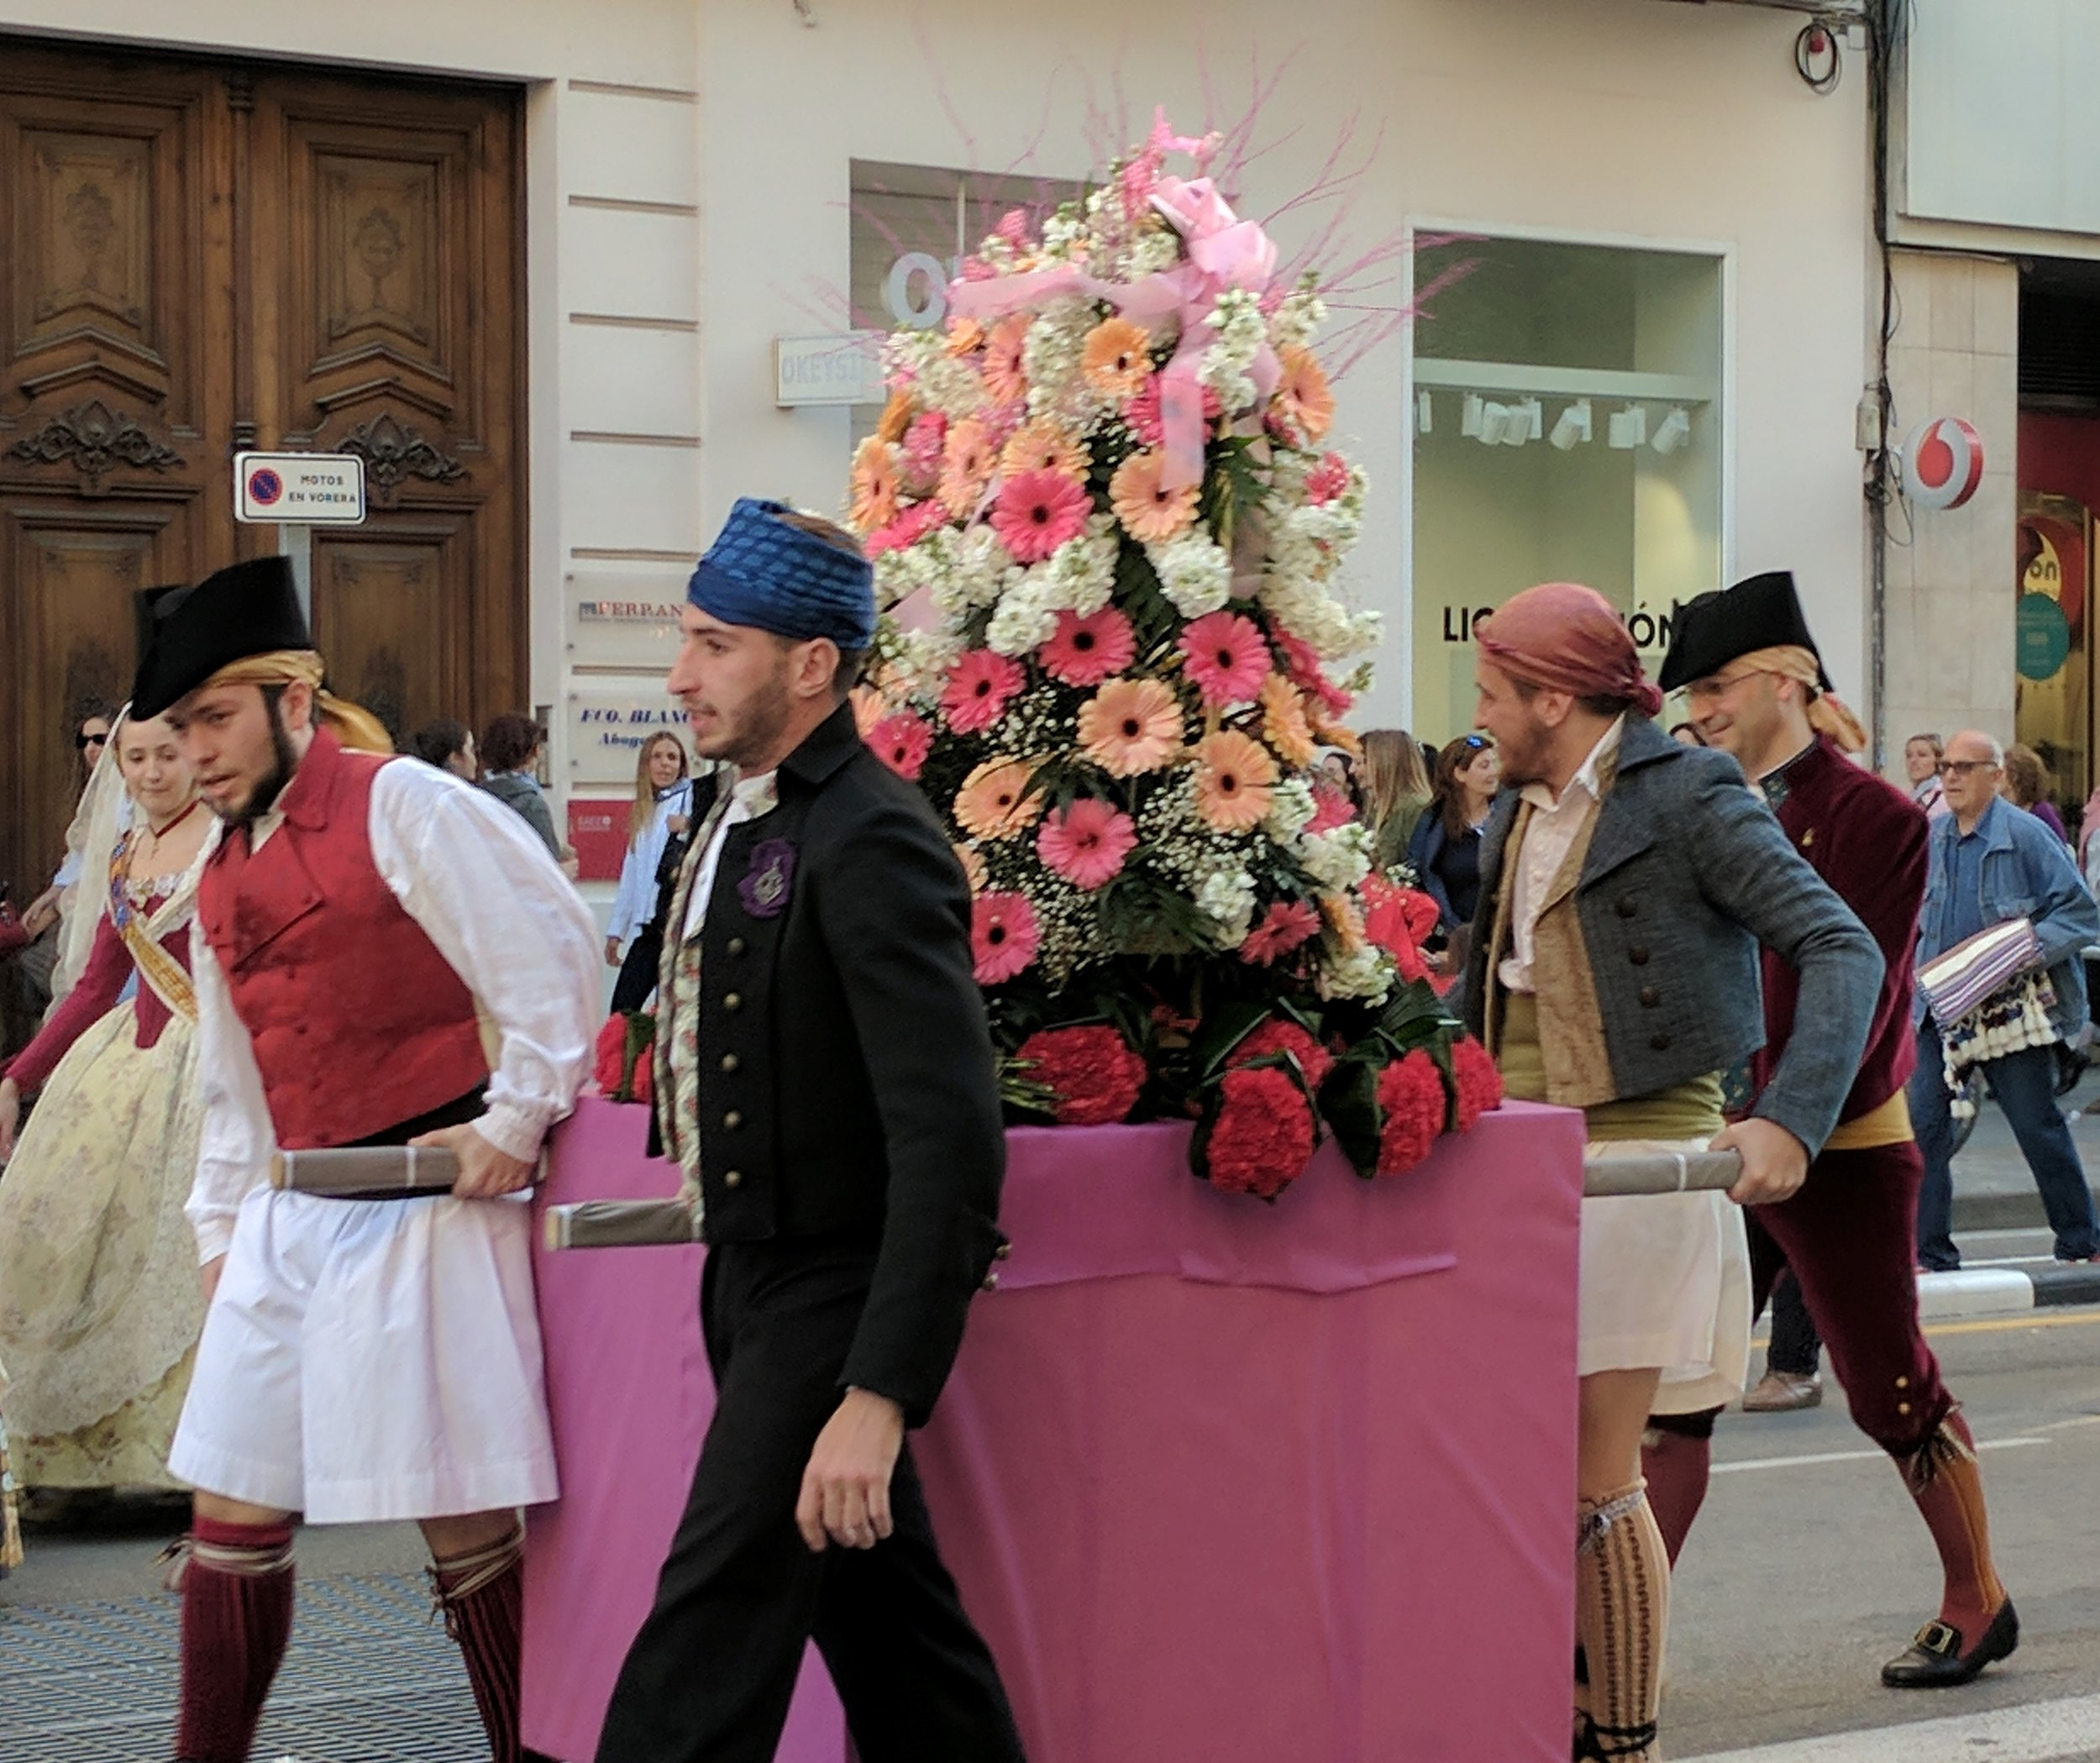 Parade offering flowers to the patron Saint of Valencia